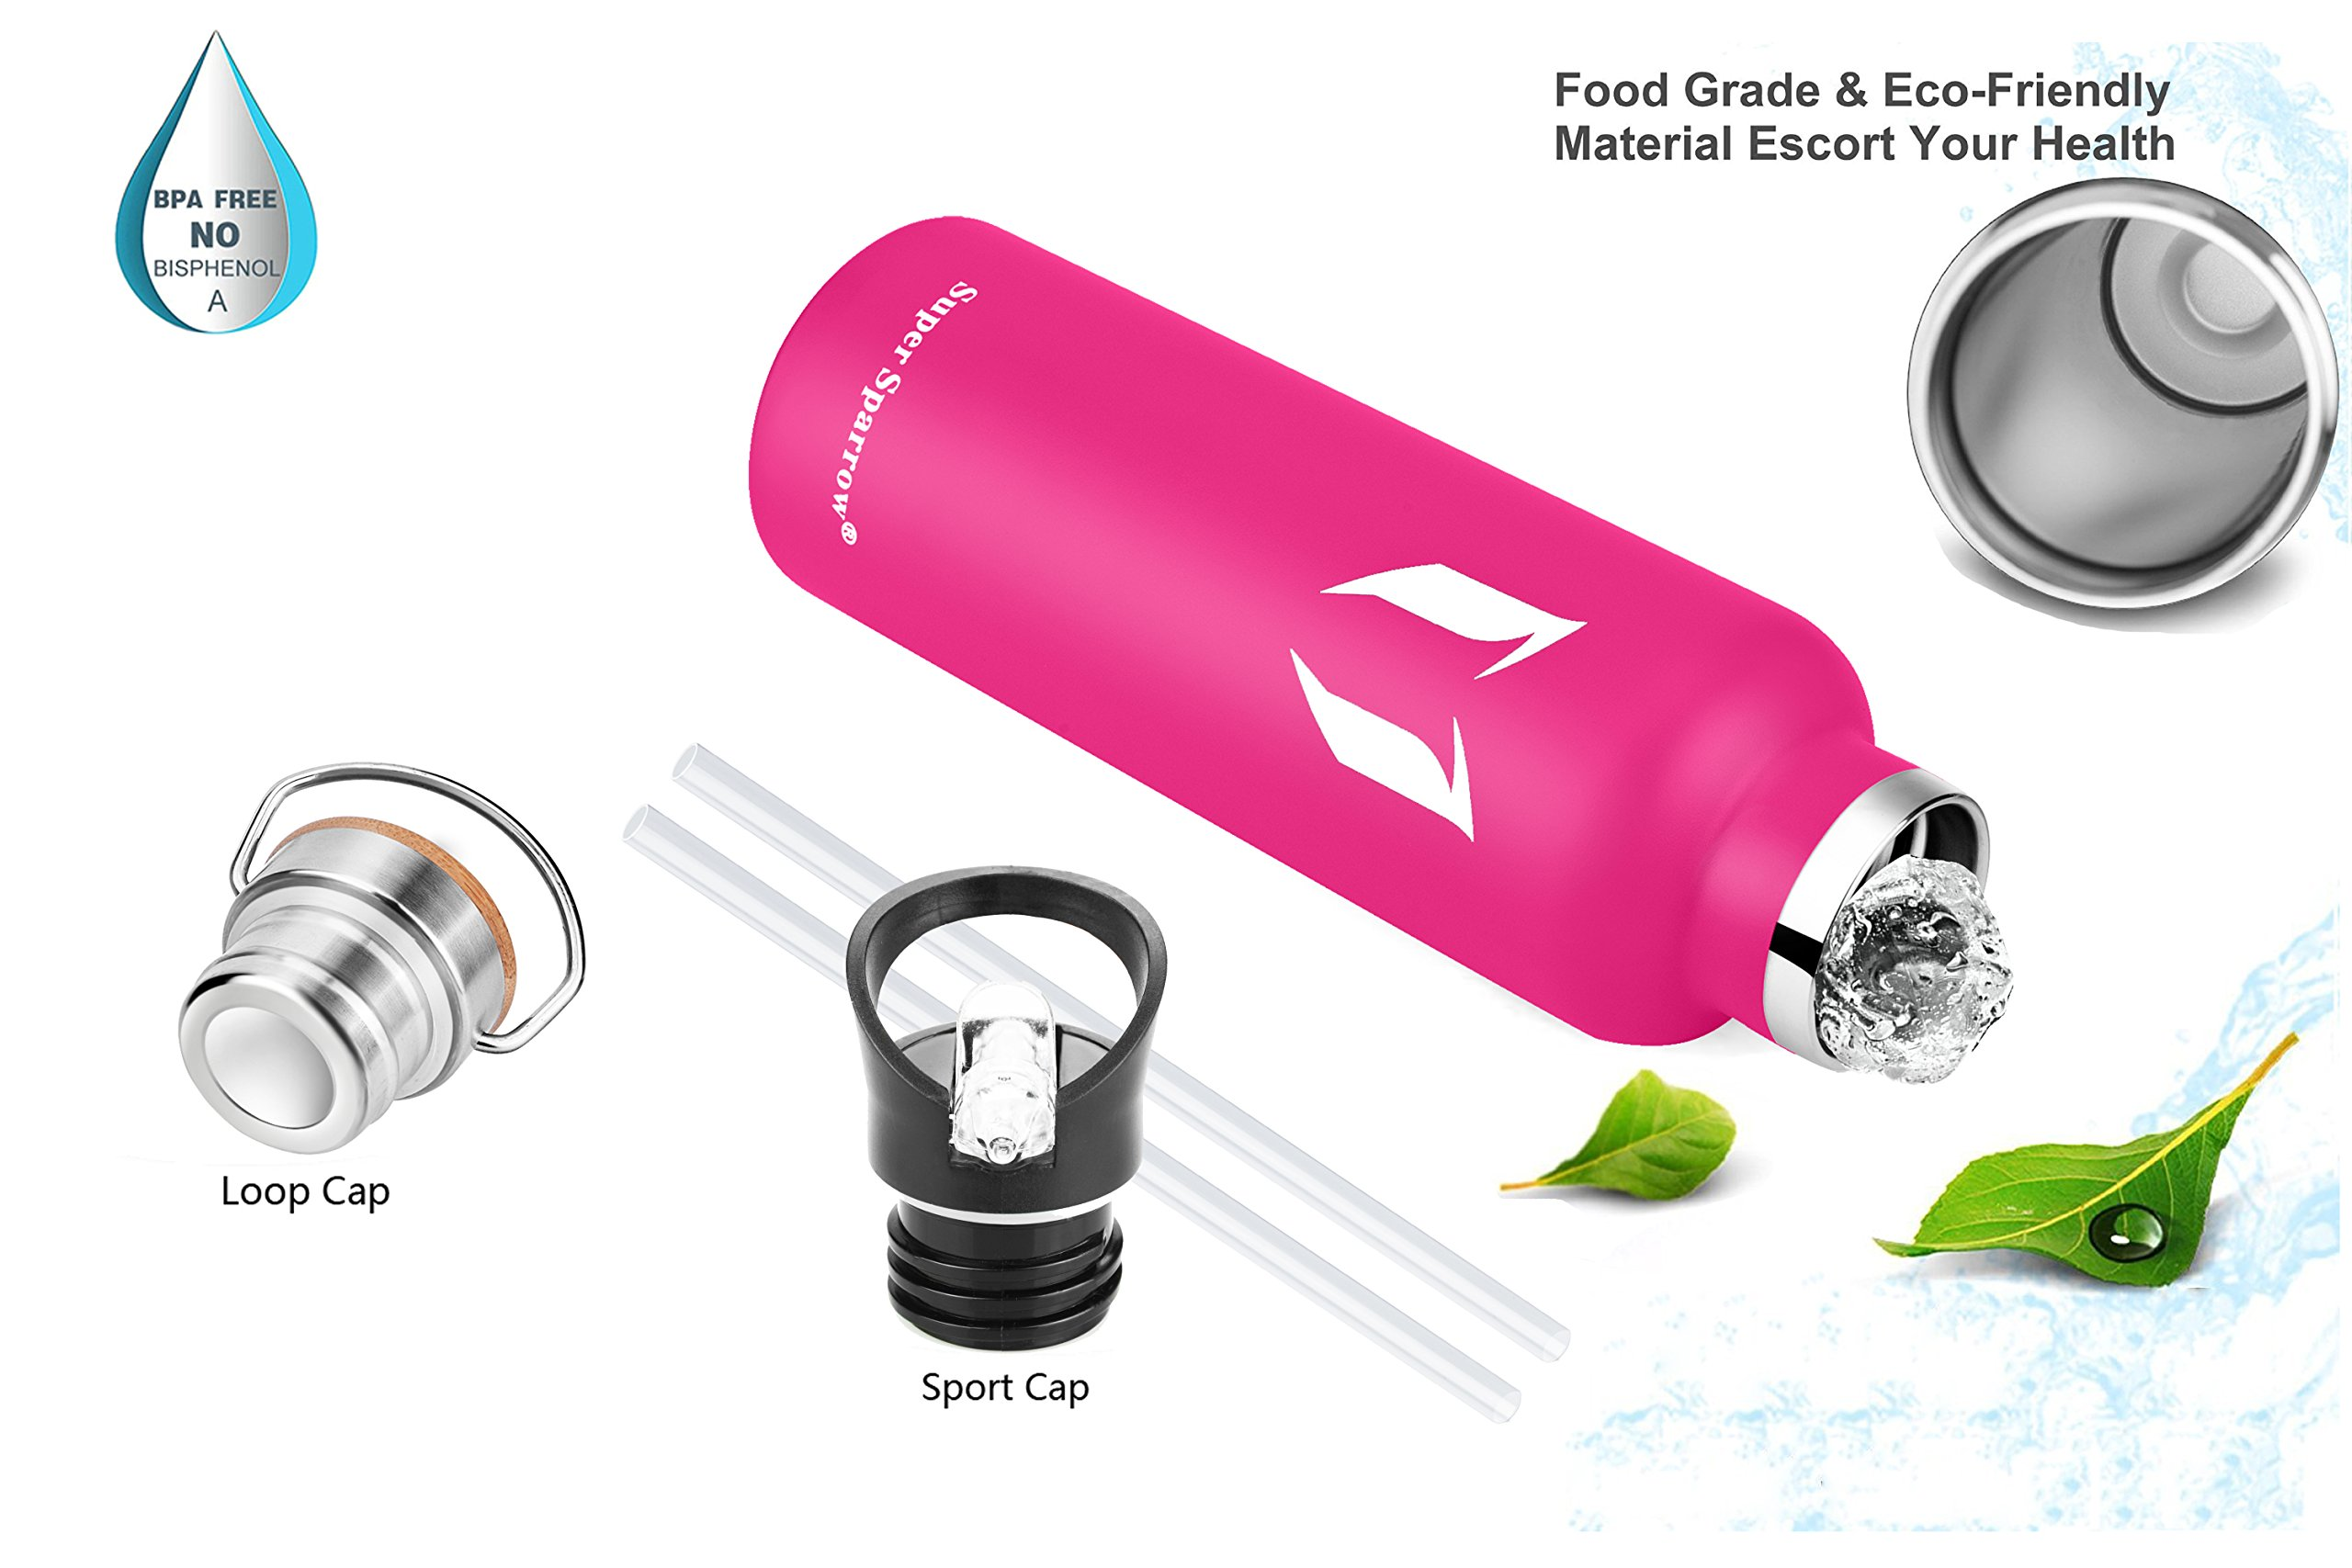 dfa2d34ccd Super Sparrow Stainless Steel Vacuum Insulated Water Bottle, Double Wall  Design,Standard Mouth - 500ml & 750ml - BPA Free - with 2 Exchangeable Caps  + ...